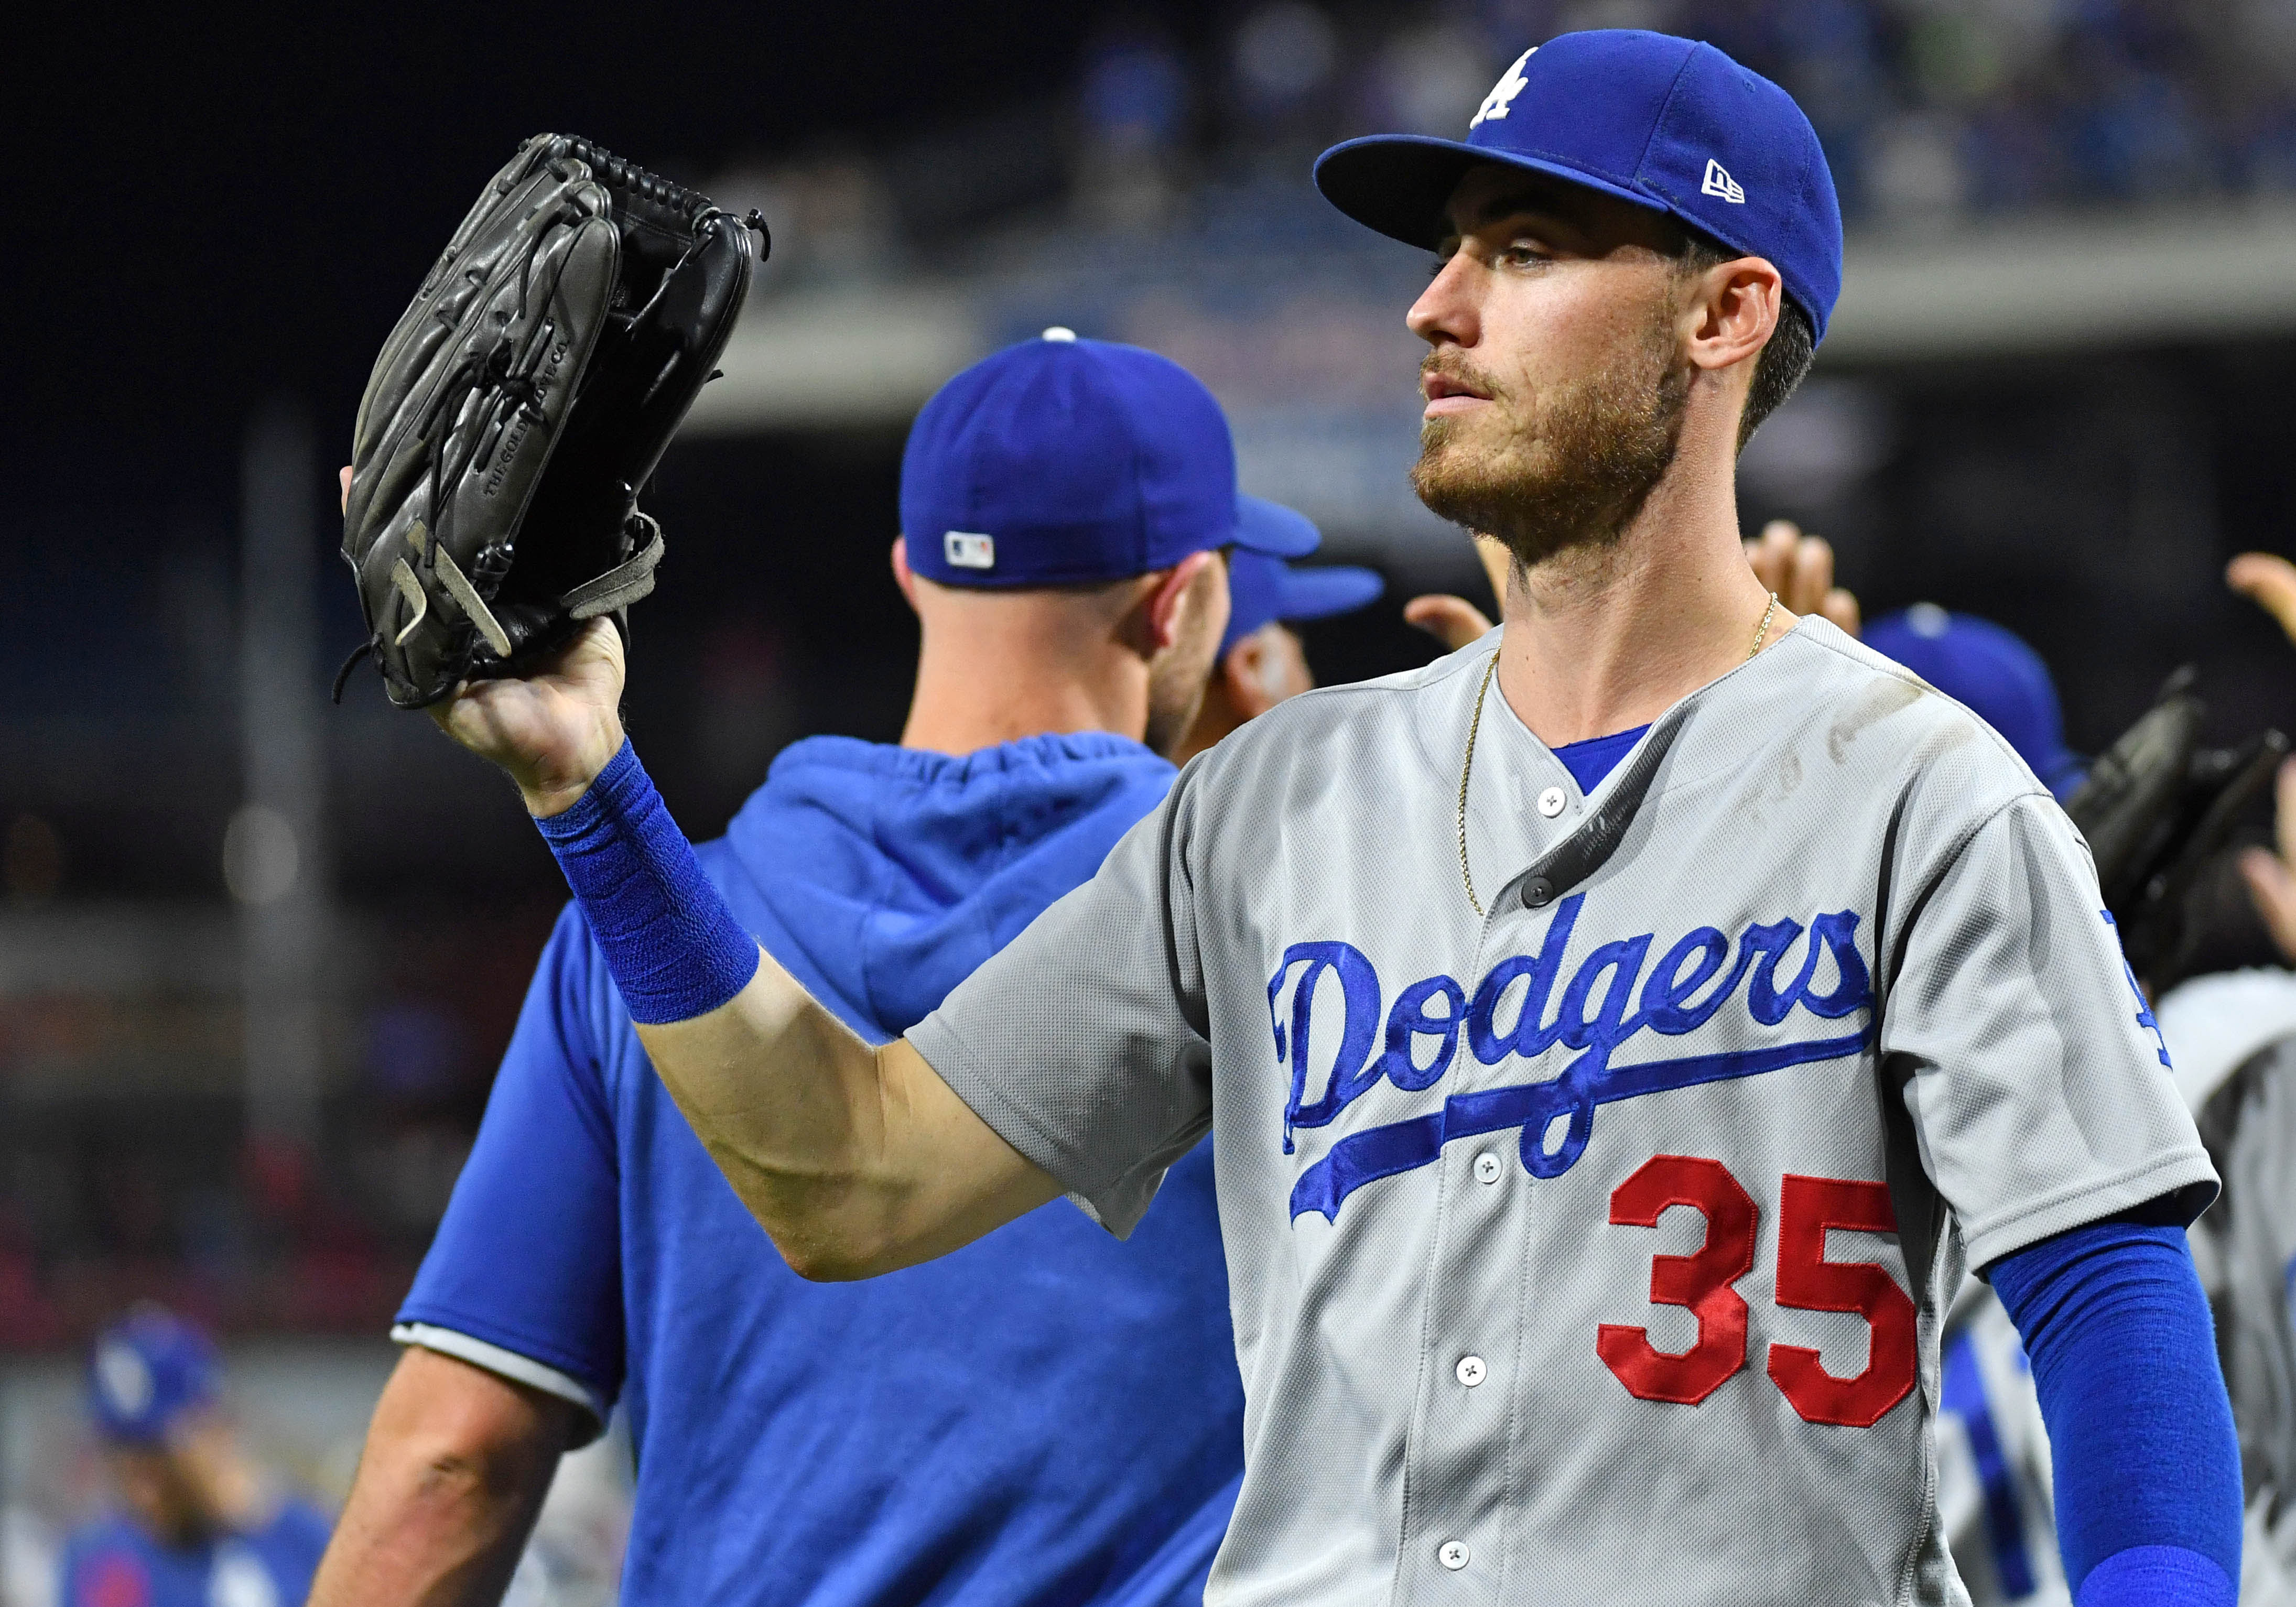 Dodgers heavy betting favorites hosting Marlins on Friday